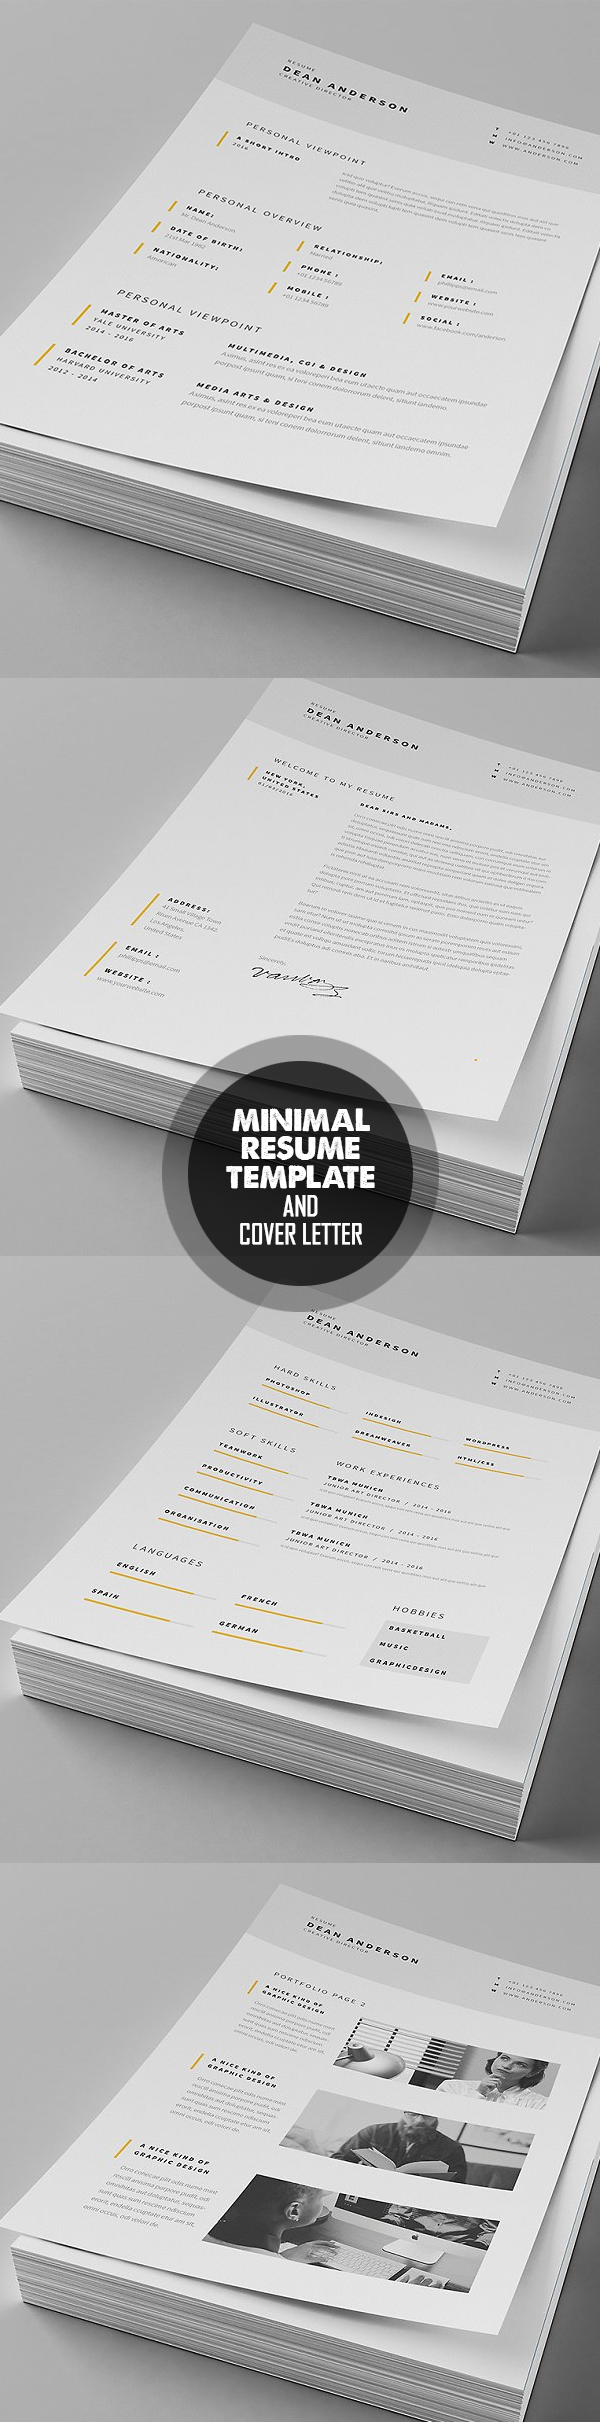 Minimal Resume   Cover Letter Template #resumedesign